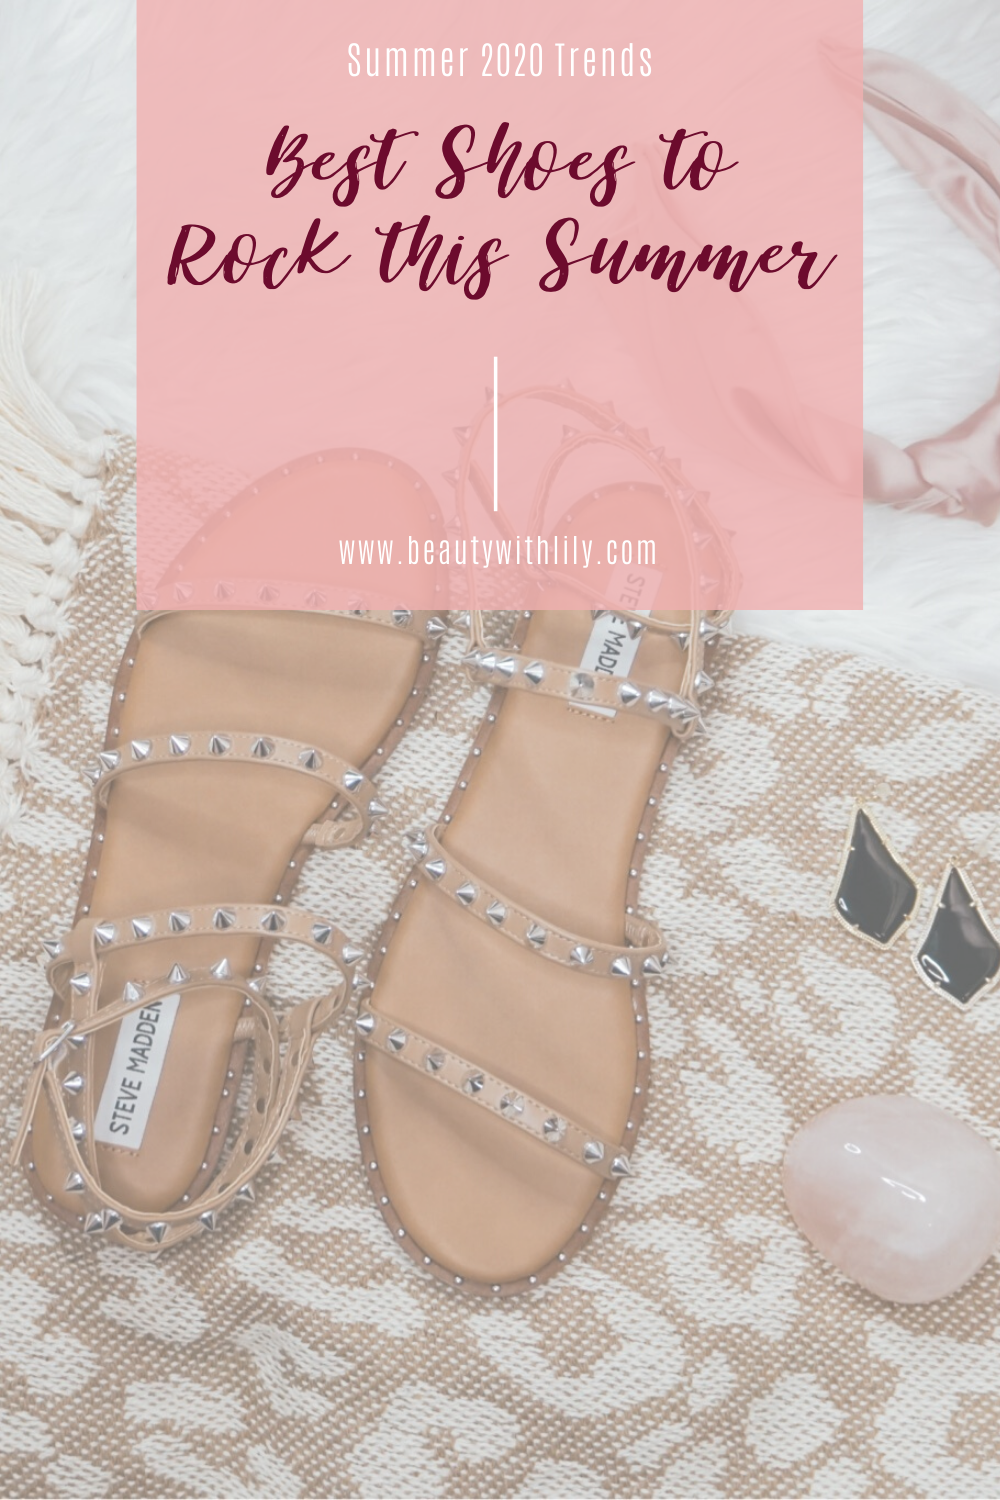 Best Shoes to Rock this Summer // Summer Shoes // Summer Sandals // Best Shoes for Summer // Summer 2020 Trends // Summer Fashion // Spring Fashion | Beauty With Lily #summerfashion #summershoes